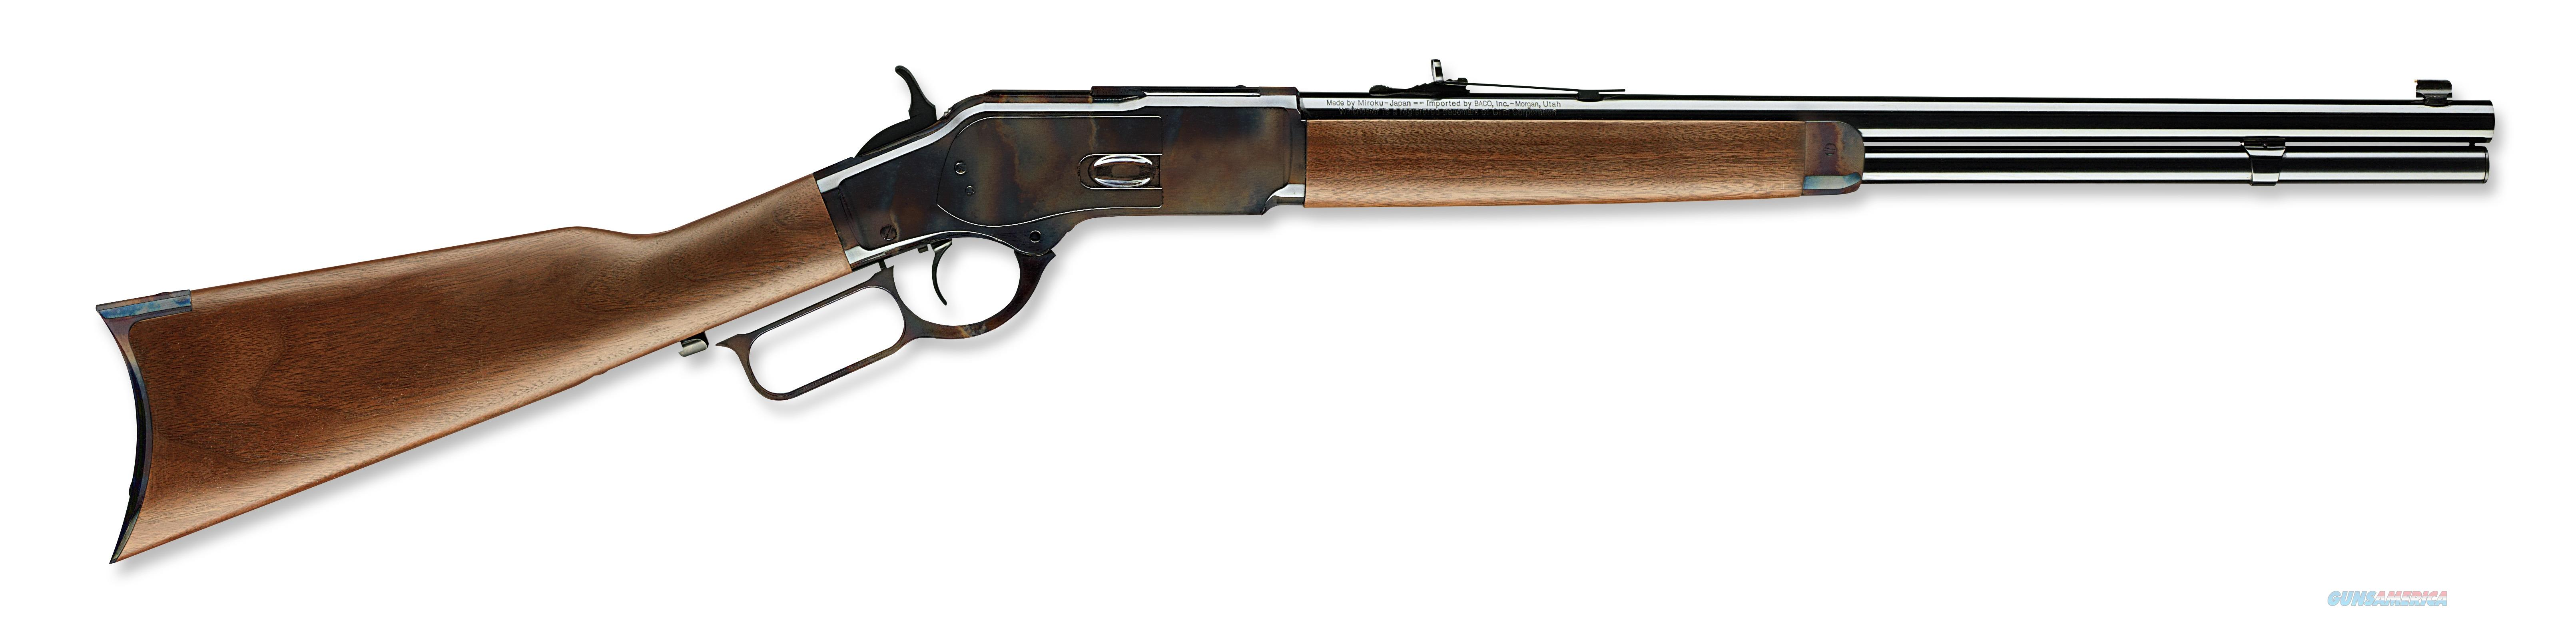 "Winchester 1873 Short Rifle CCH .44-40 Win 20"" 534202140   Guns > Rifles > Winchester Rifles - Modern Lever > Other Lever > Post-64"